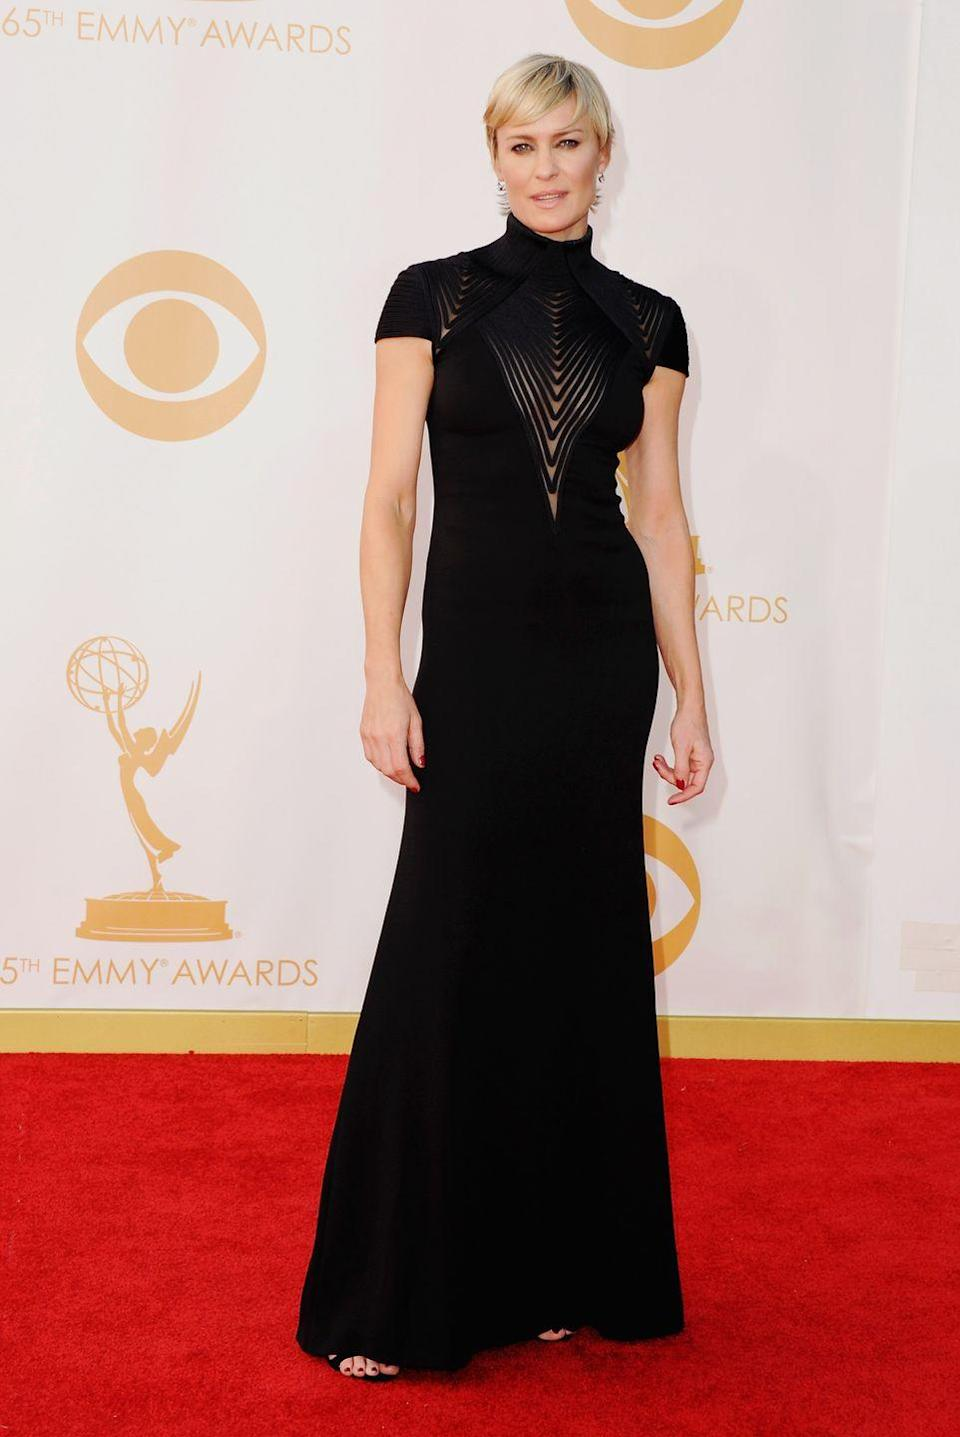 <p>Claire Underwood would approve of Wright's amazing black dress at the Emmy Awards in 2013.</p>